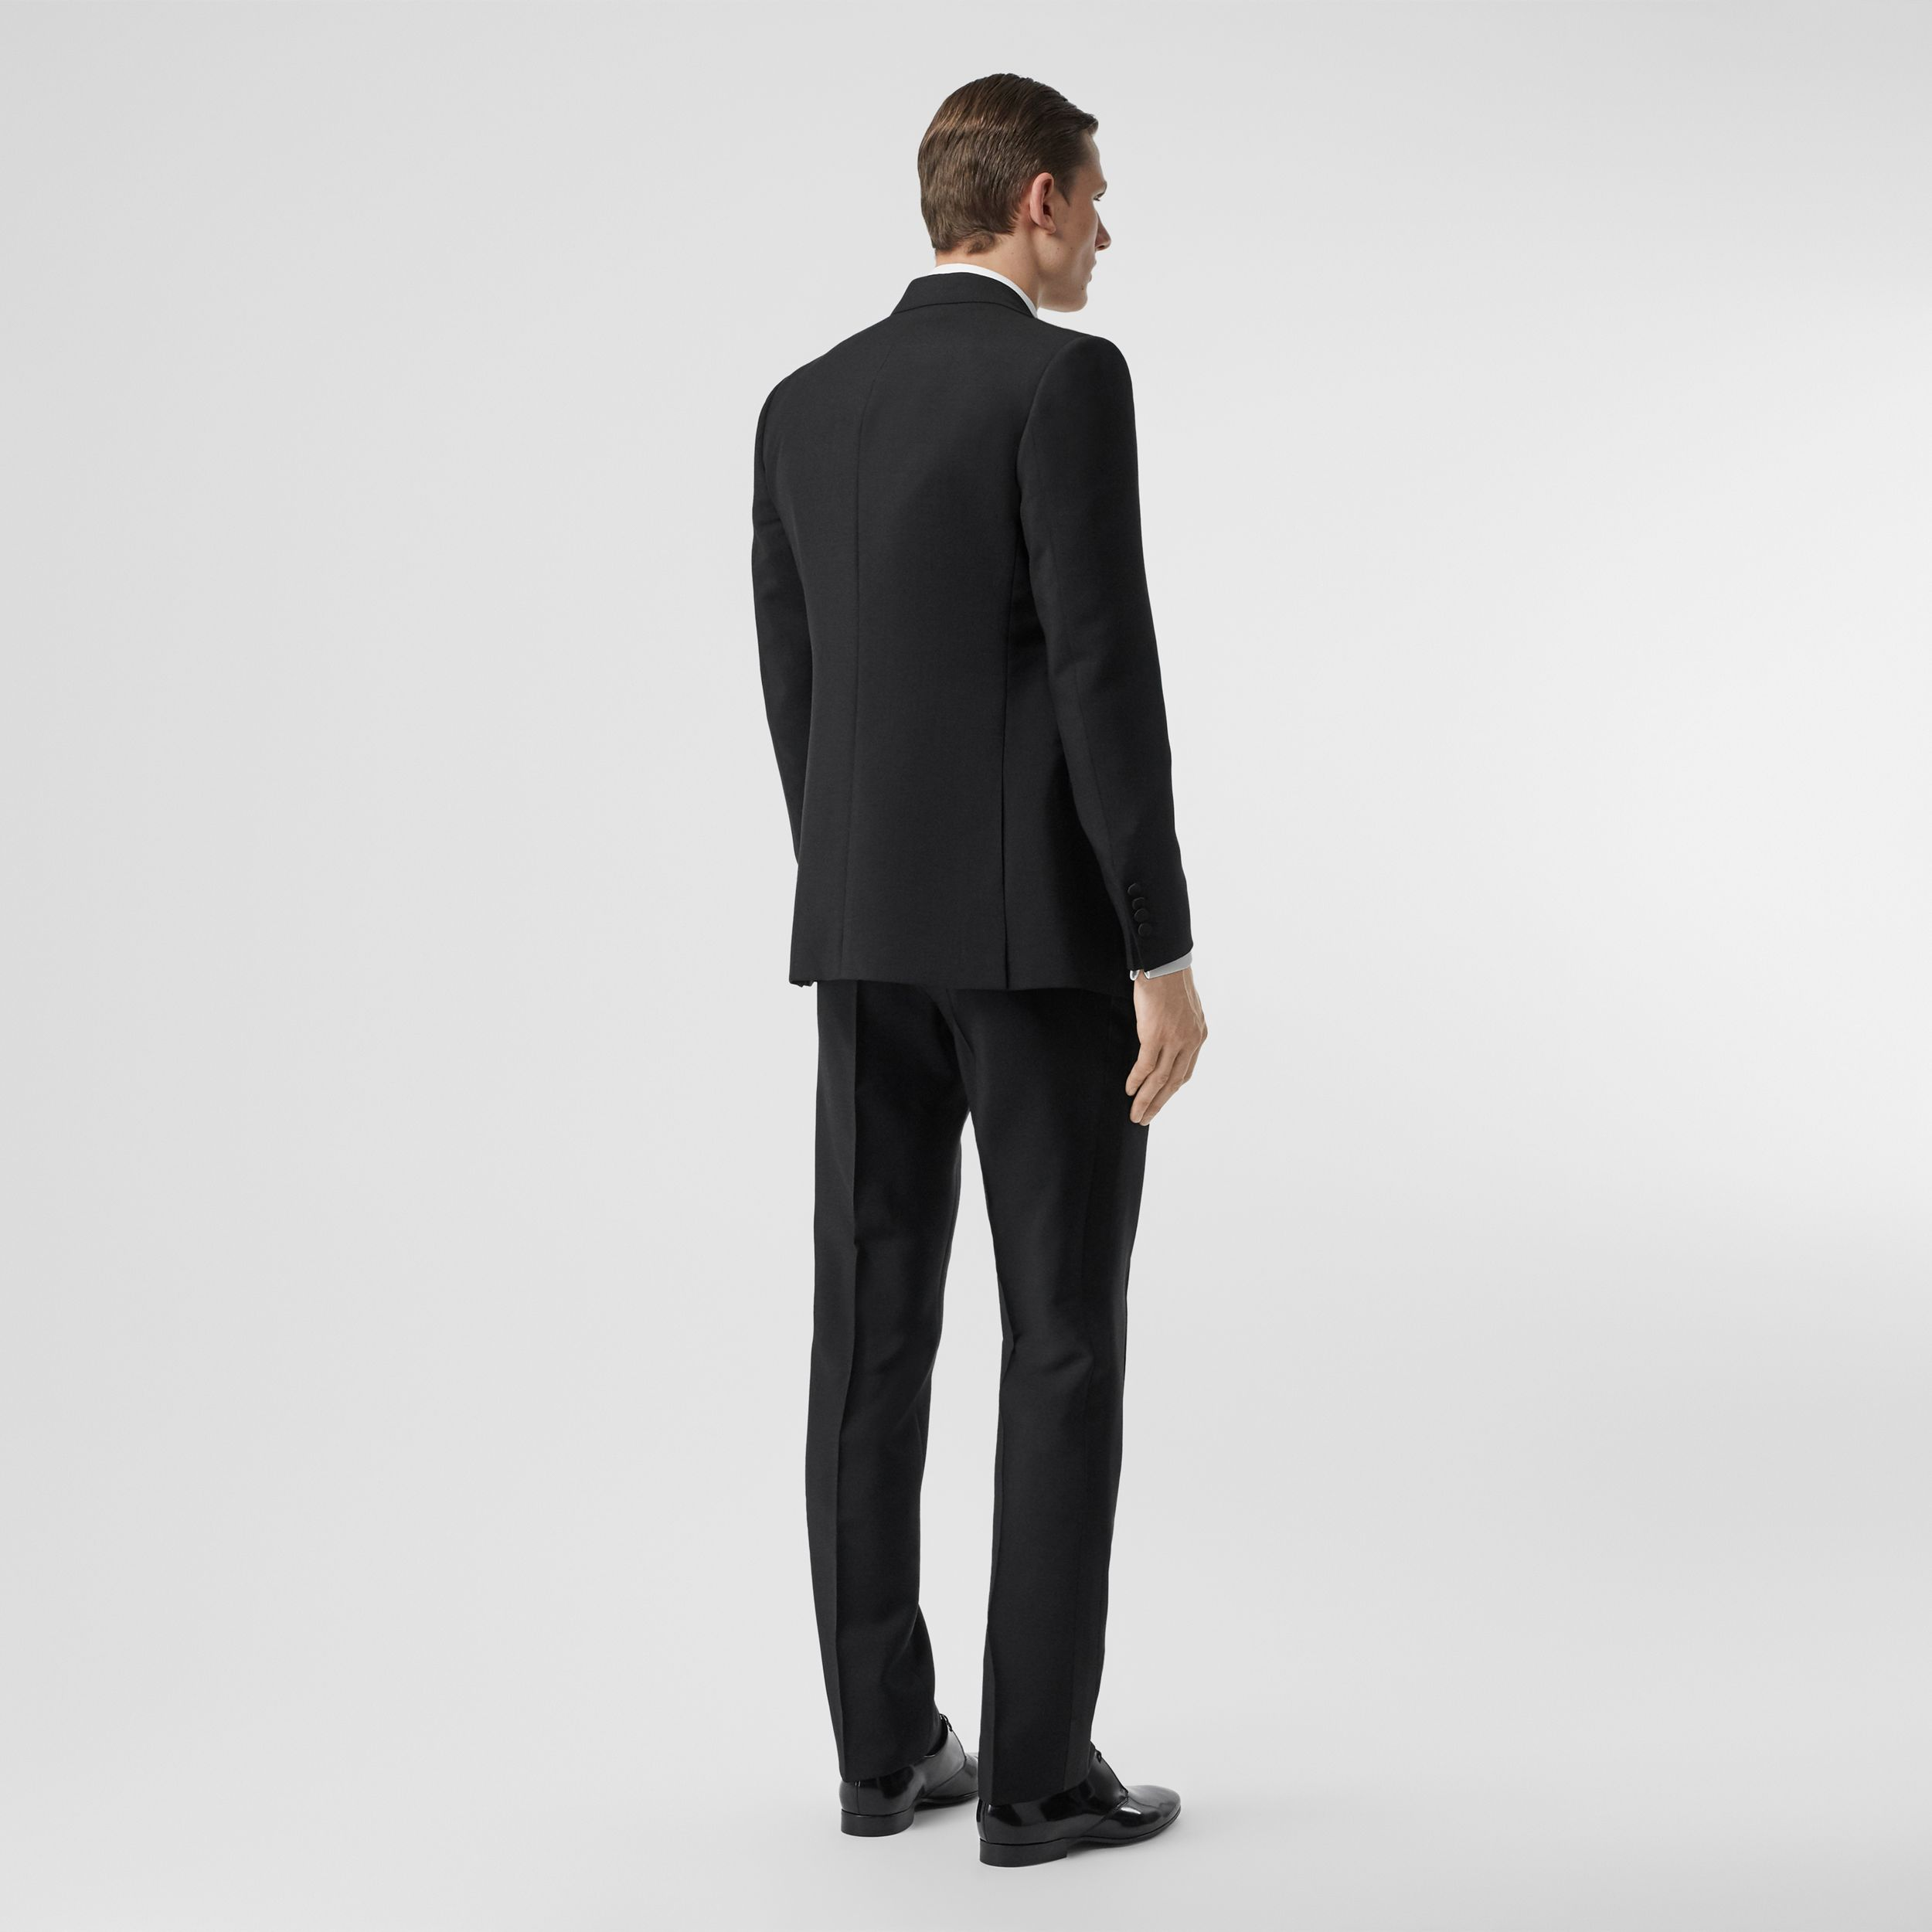 English Fit Mohair Wool Tuxedo in Black - Men | Burberry Canada - 3